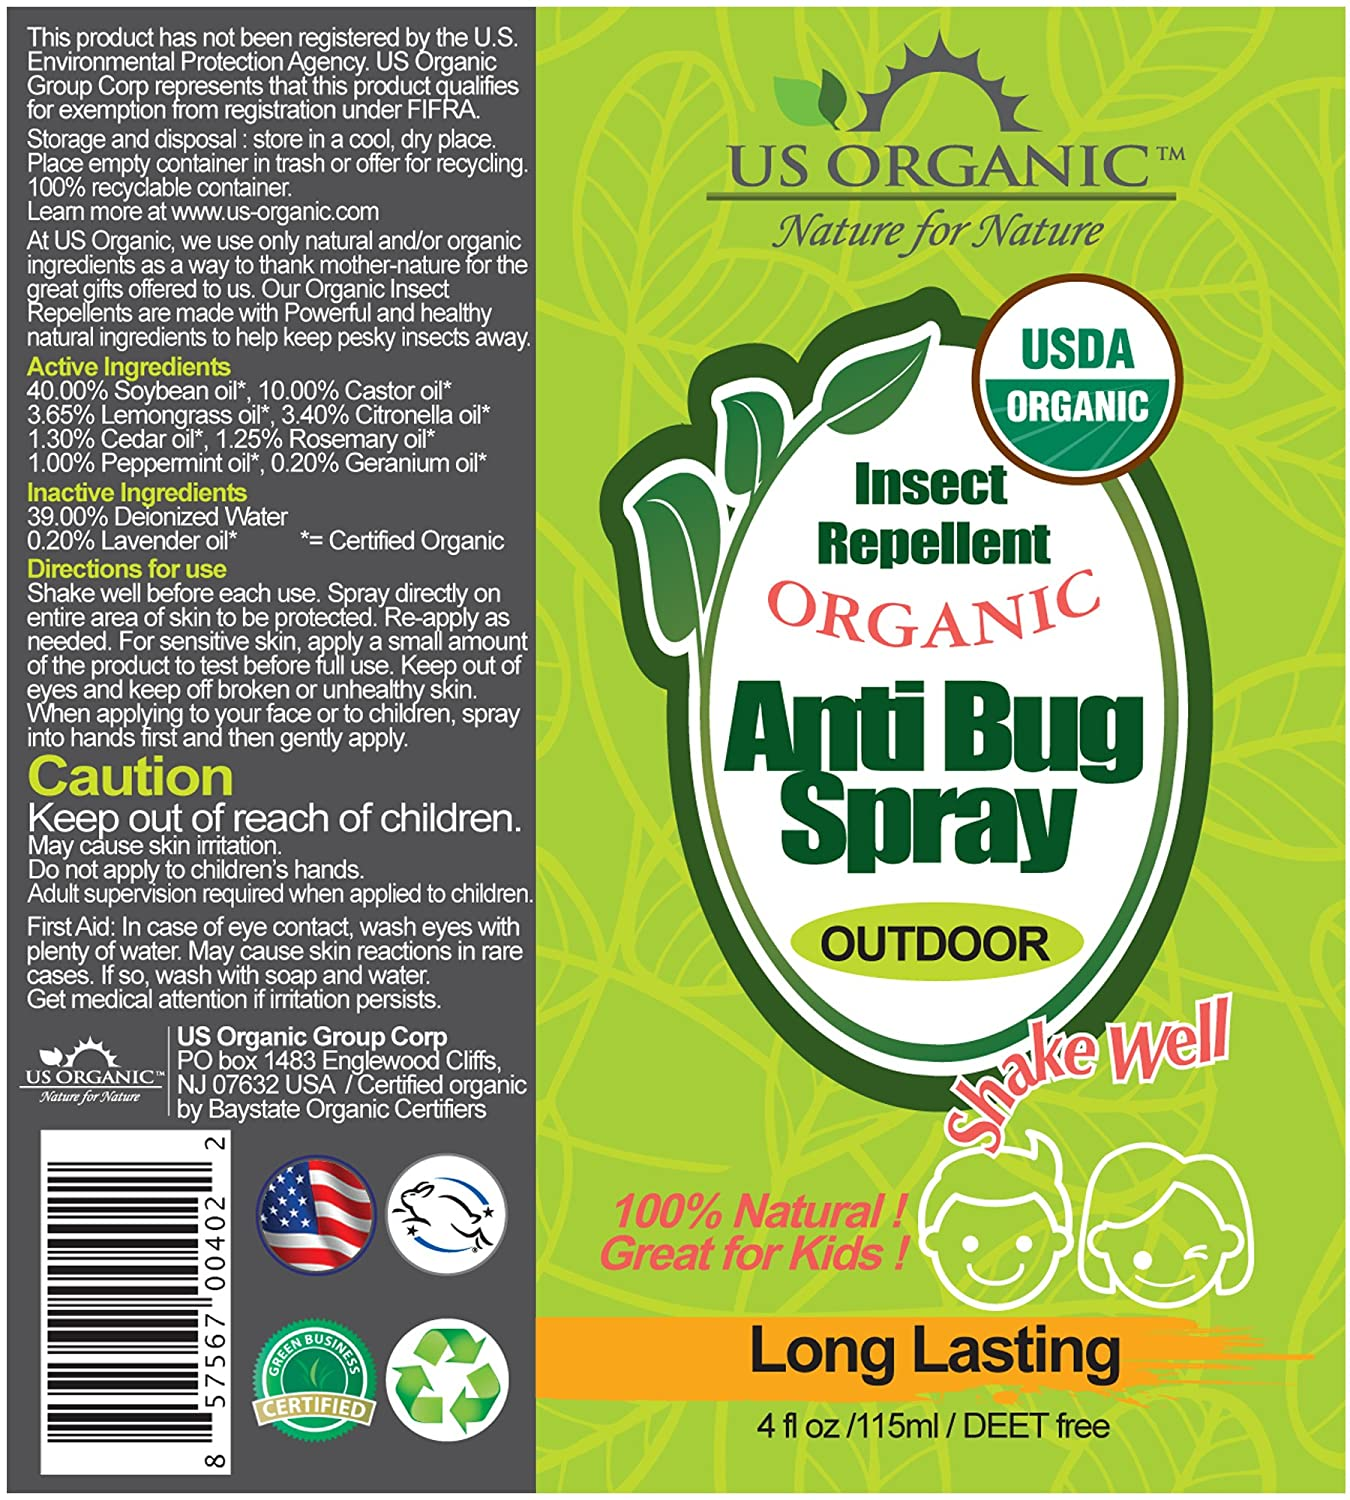 Organic Anti Bug Spray